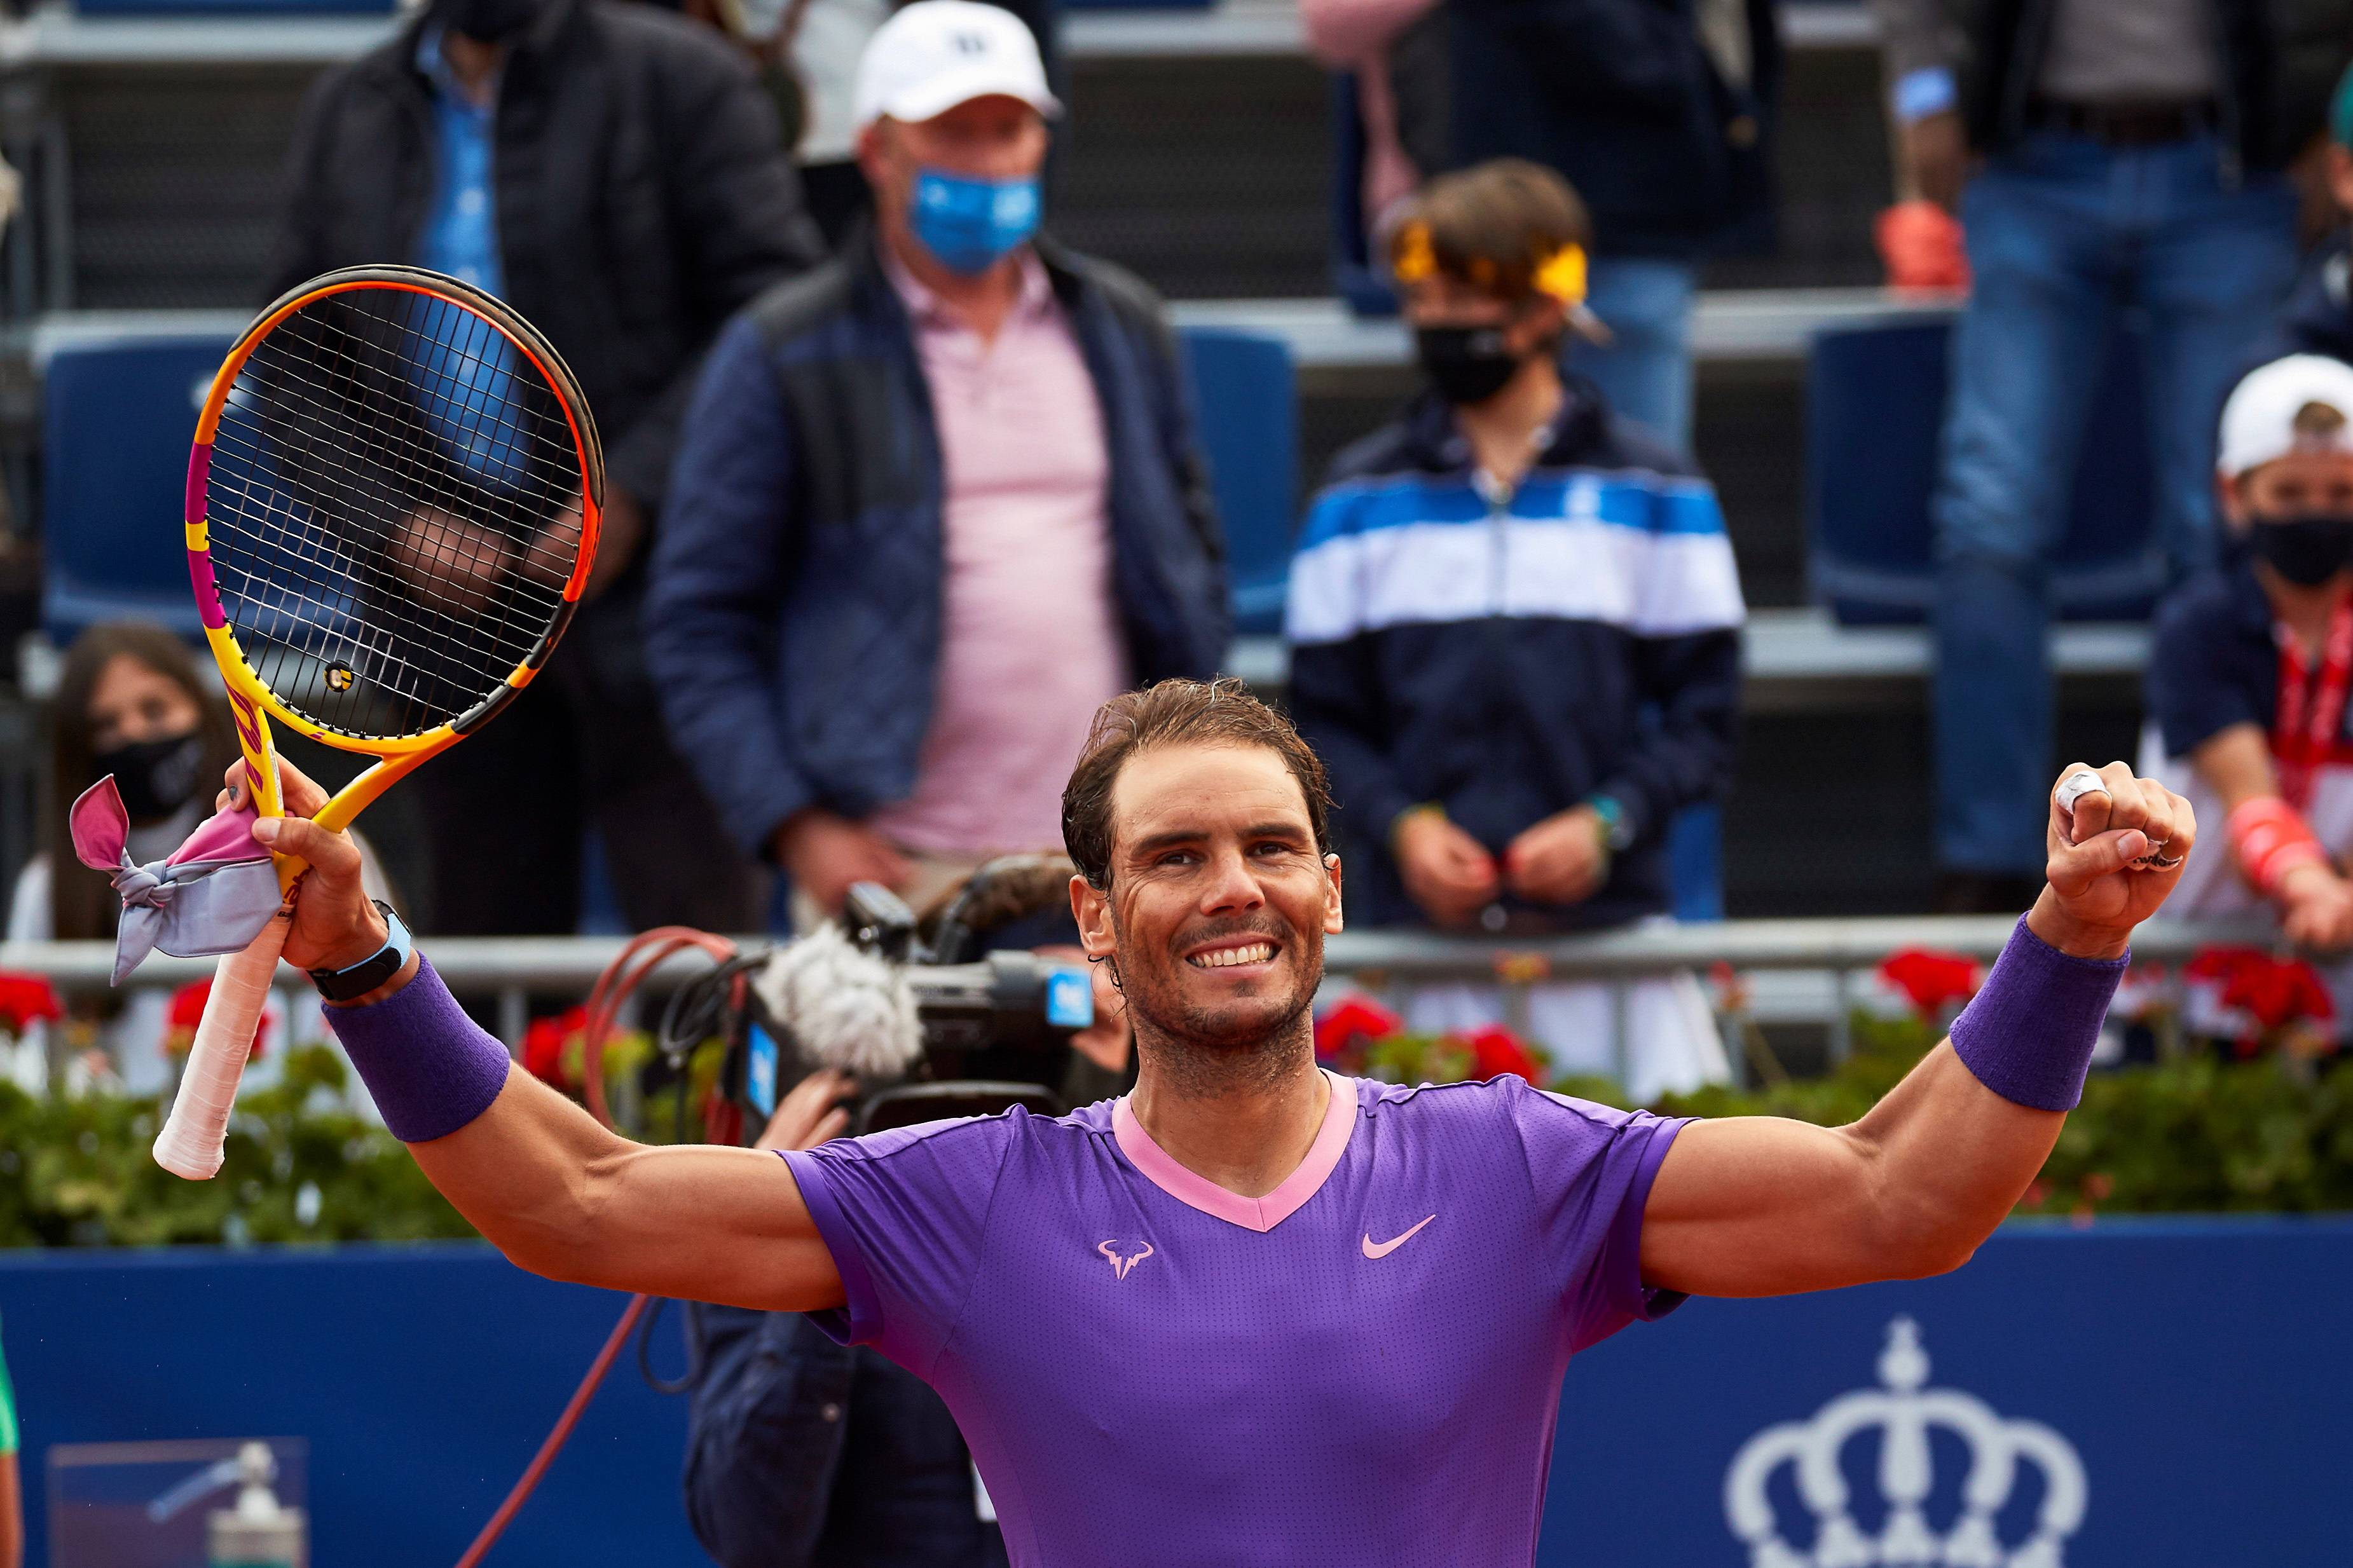 Rafael Nadal has won the Barcelona Open to return to world number two